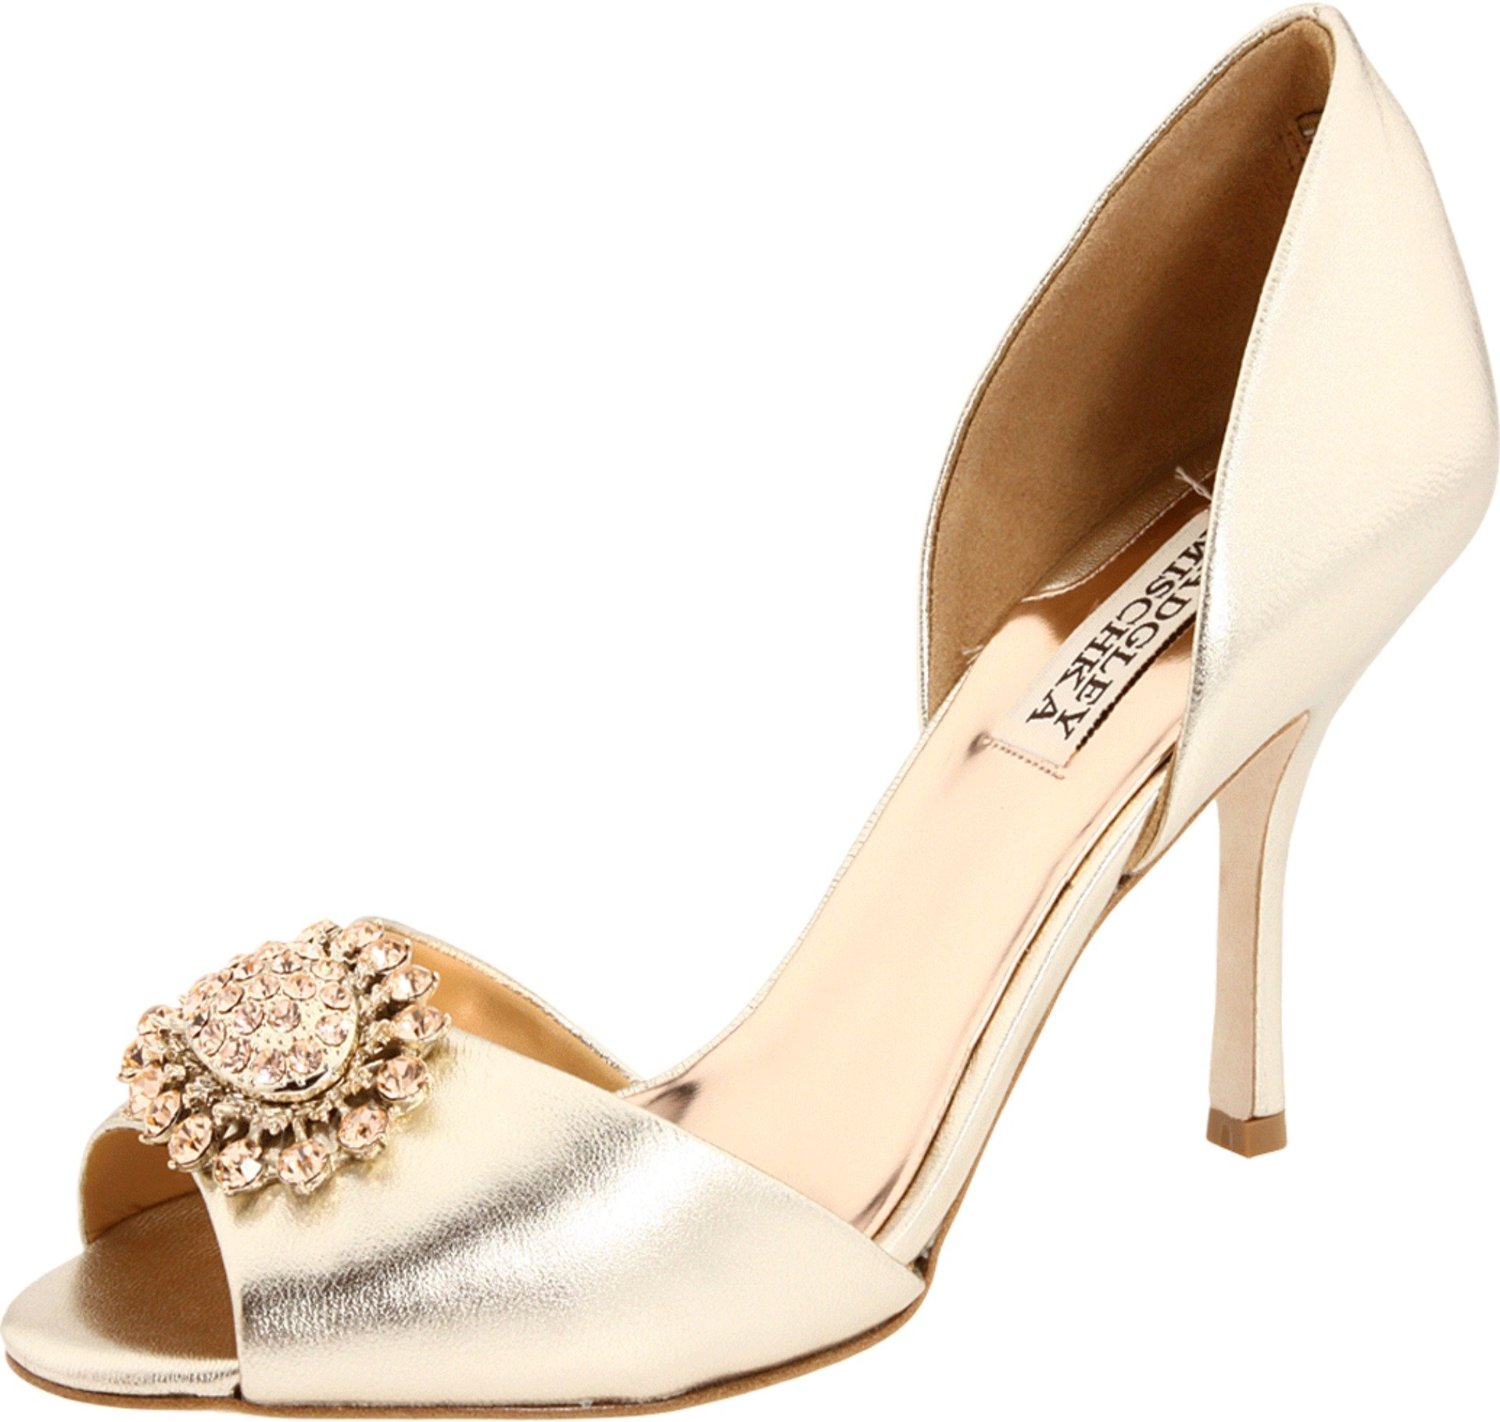 Fashion Trends Badgley Mischka Pump Shoes